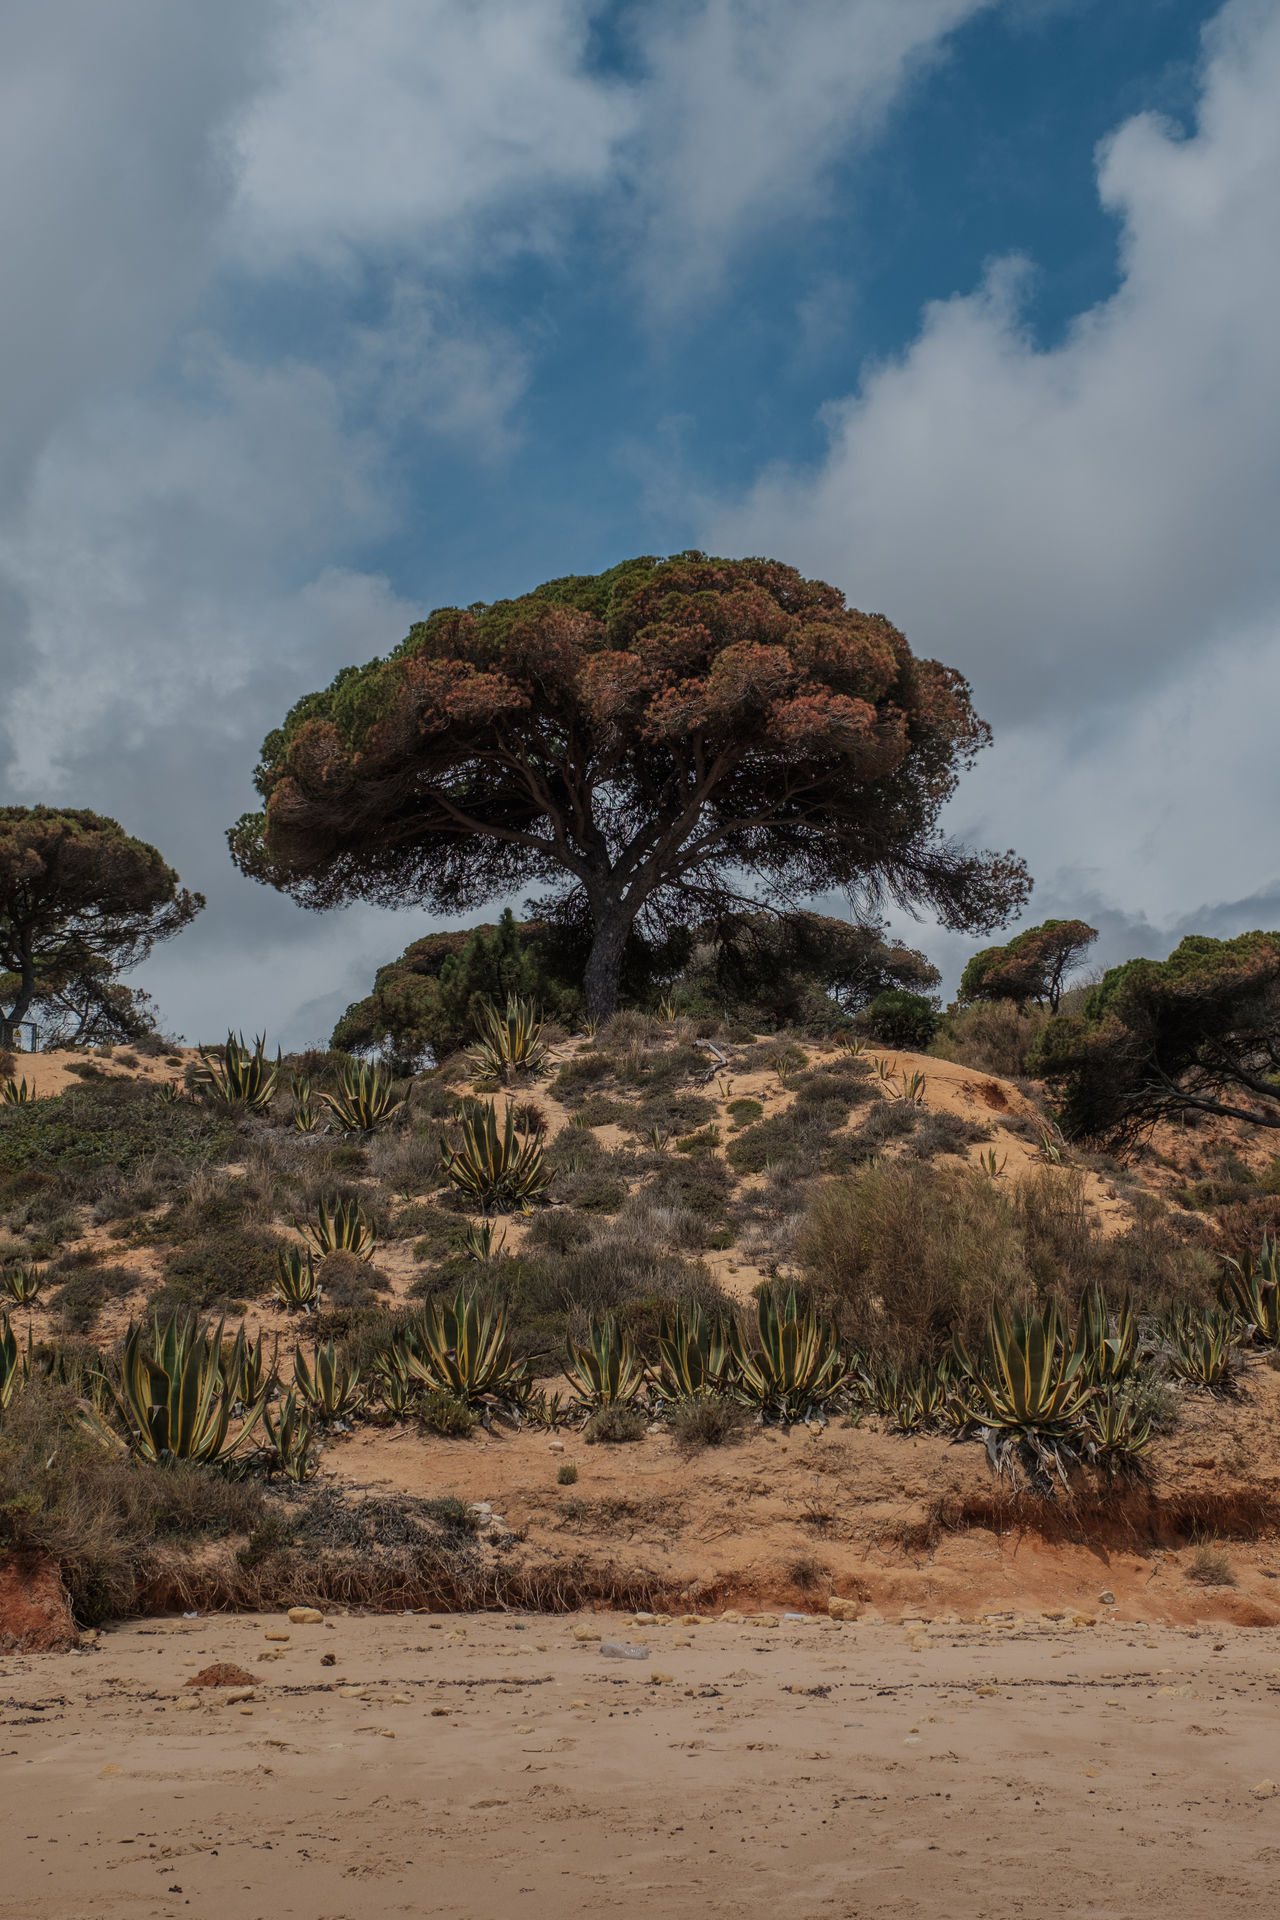 Algarve, Portugal Beauty In Nature Cloud - Sky Day Growth Nature No People Sky Tranquility Travel Destinations Tree